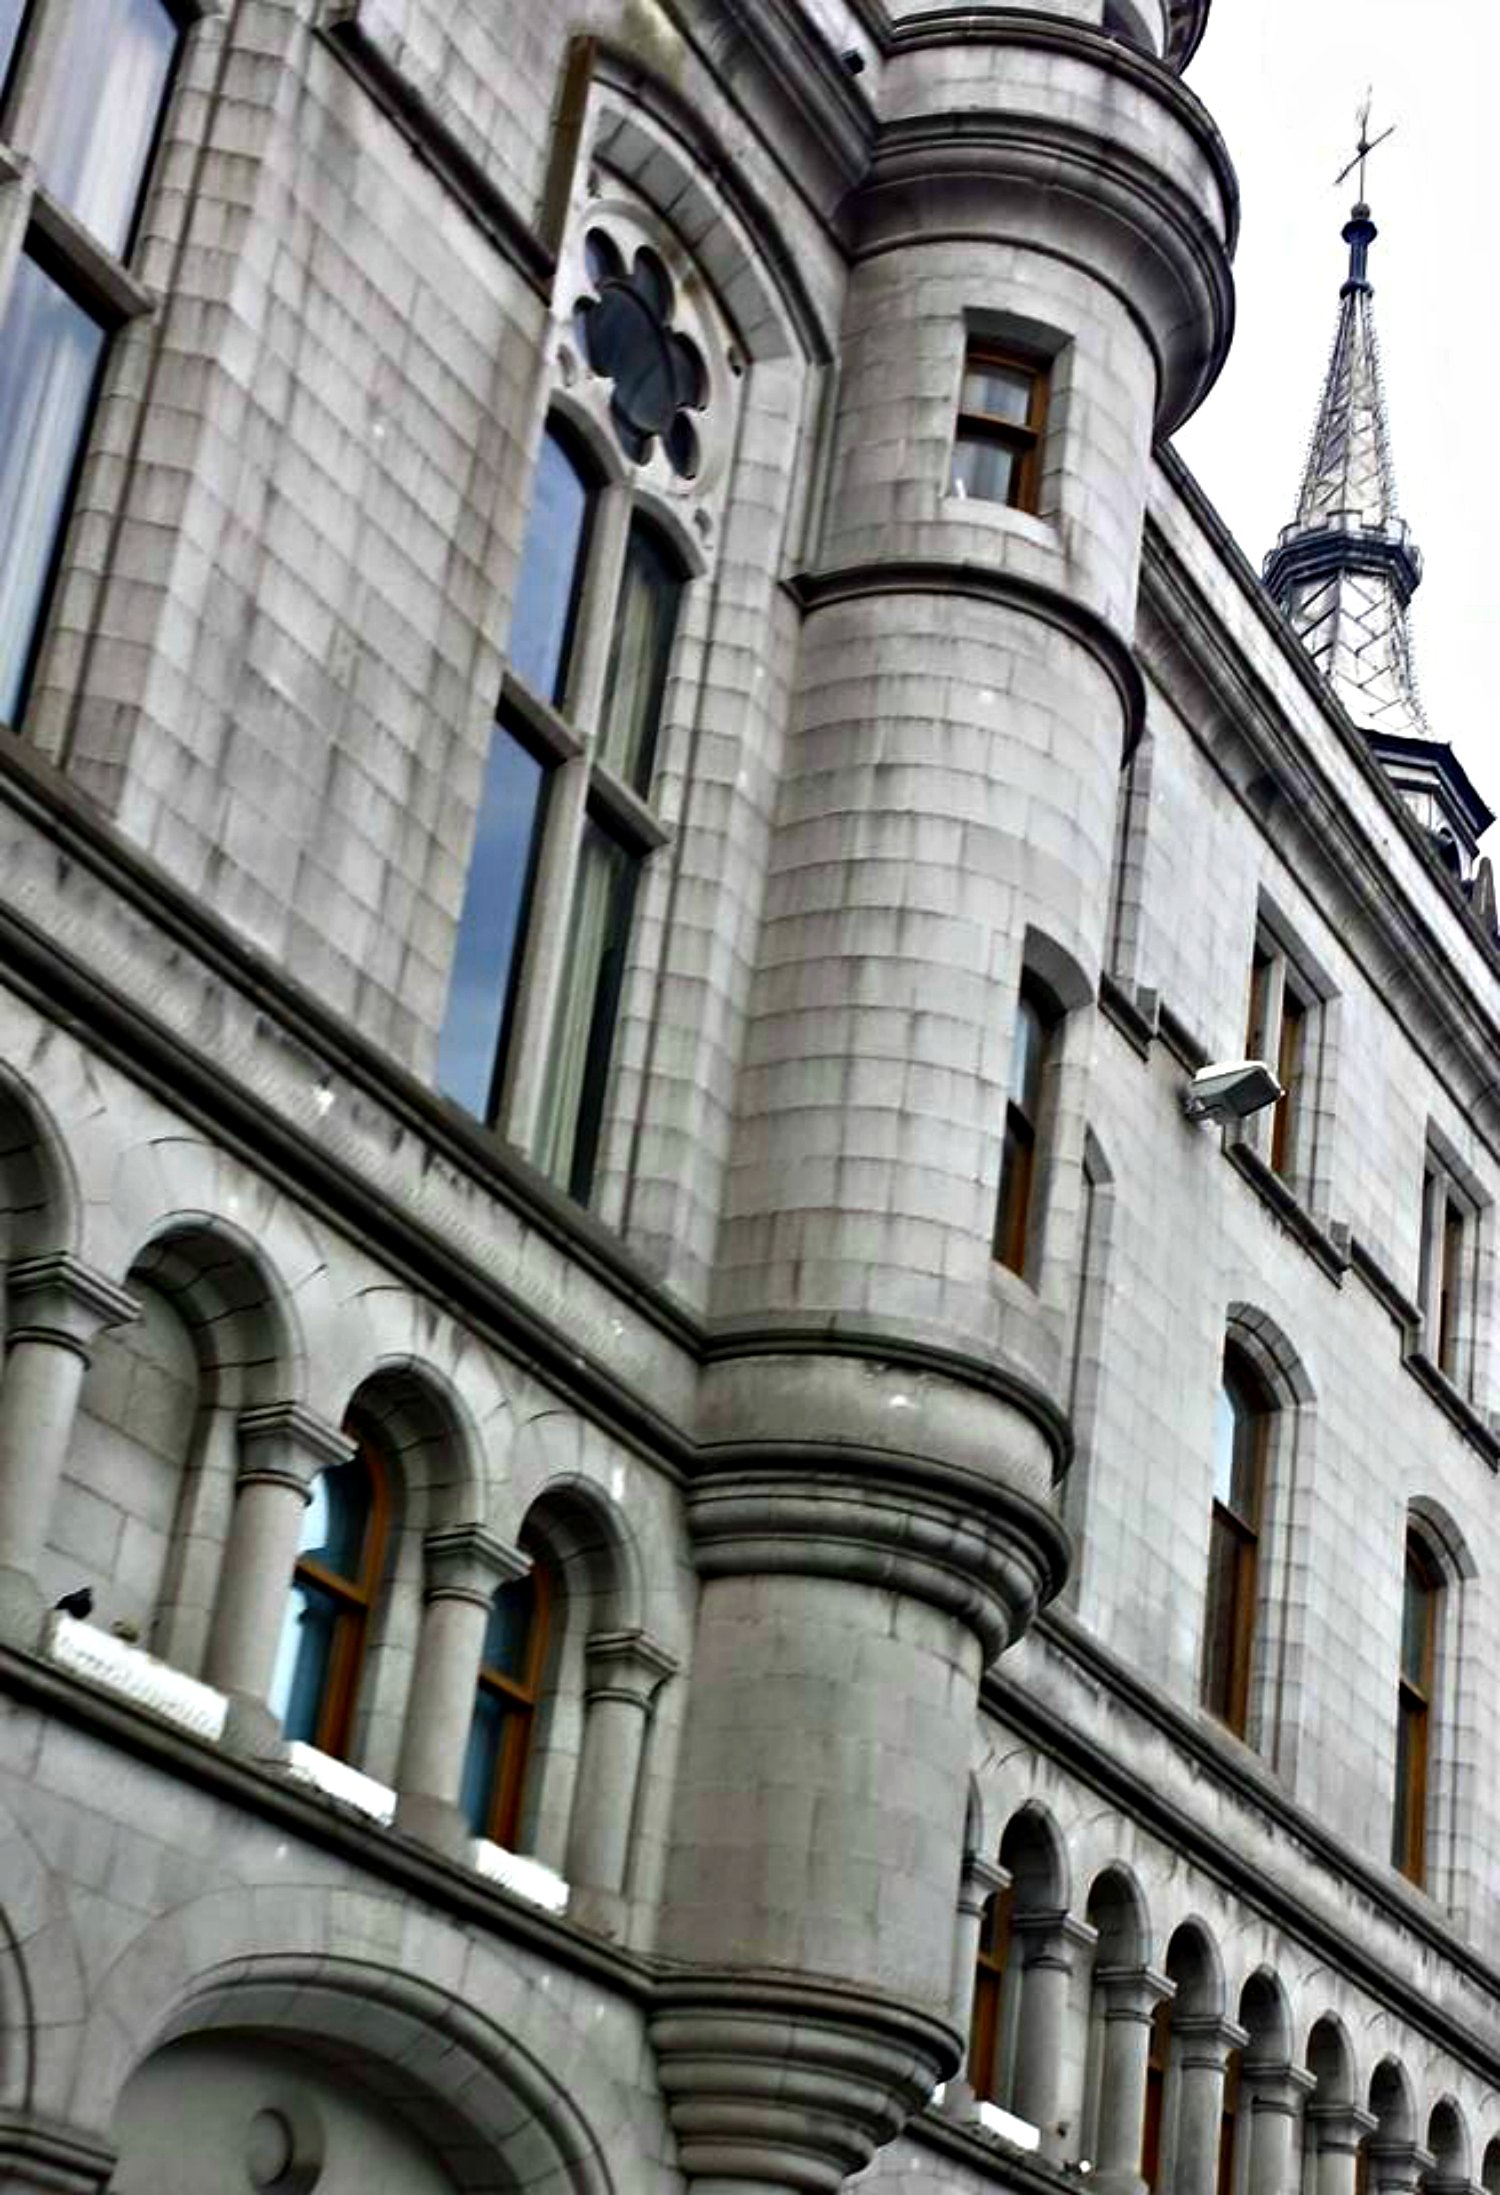 Aberdeen - famous for its striking granite architecture